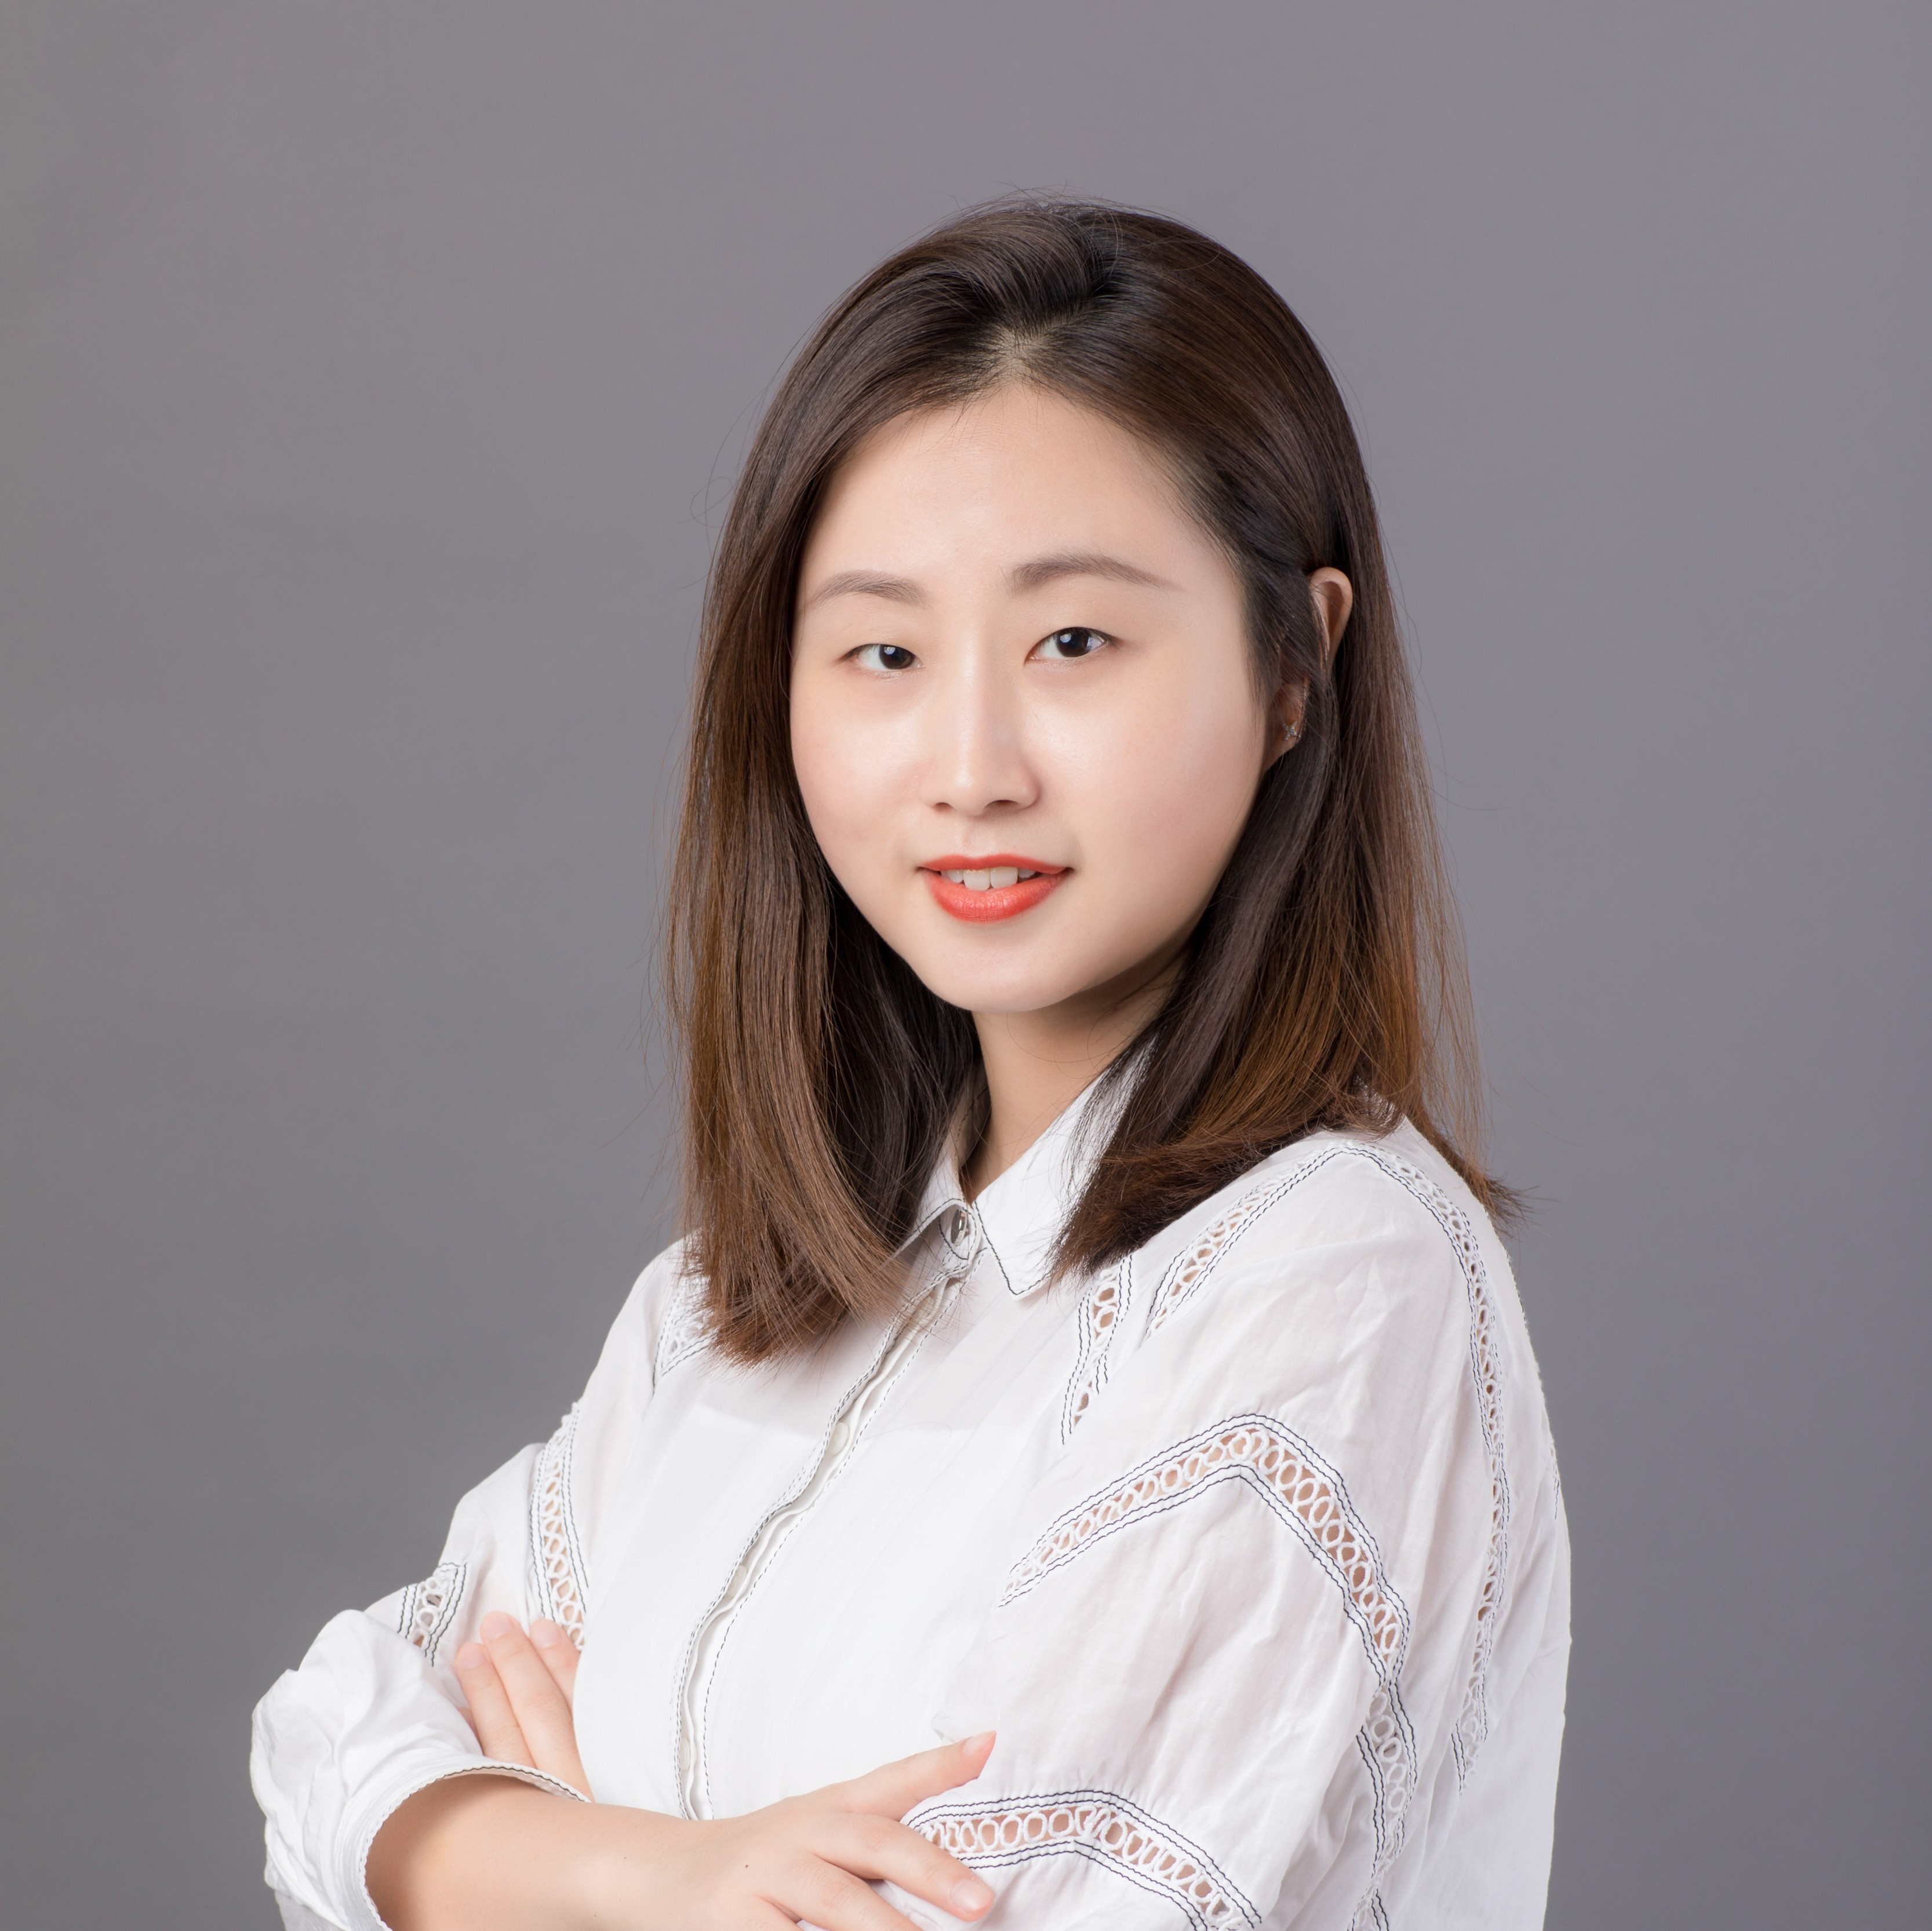 AIP英语团队王琦  Wendy Wang老师个人照片